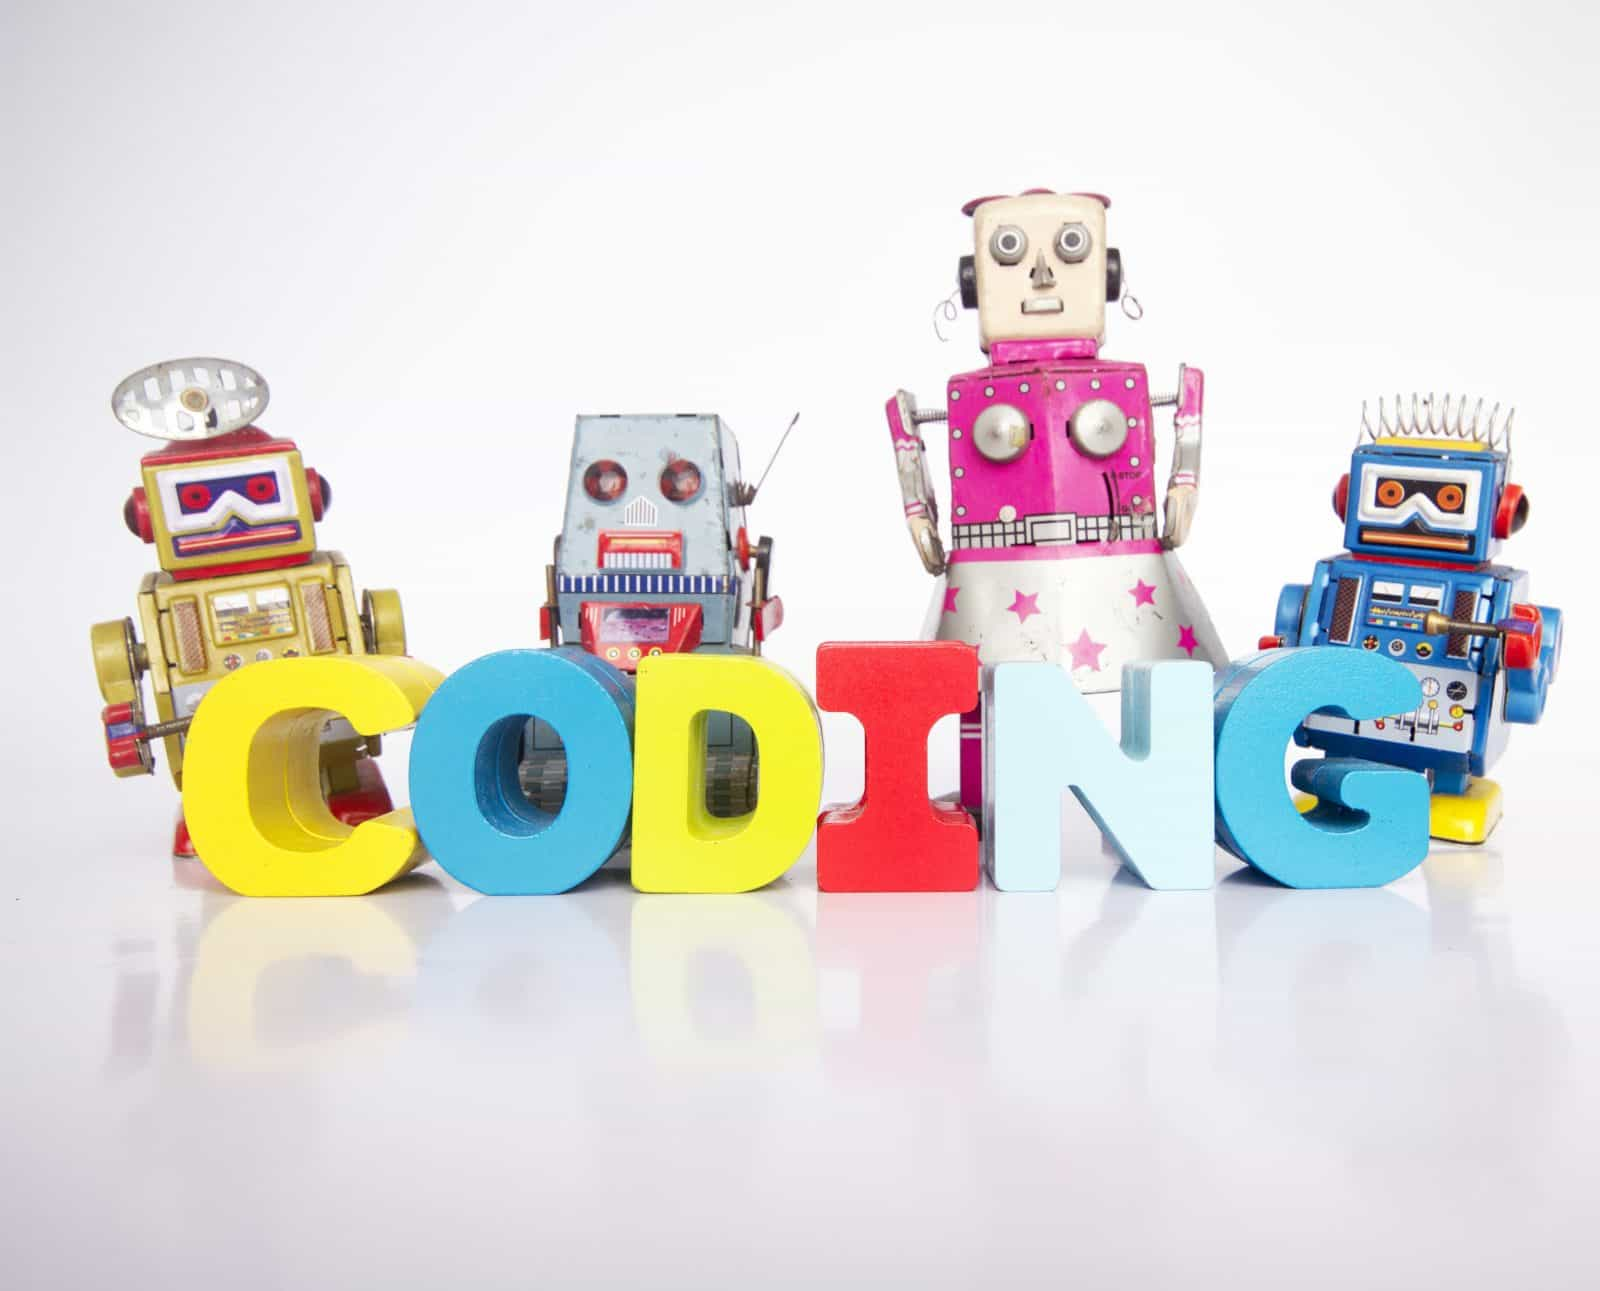 Best-Coding-Robot-Toys-Featured-Image